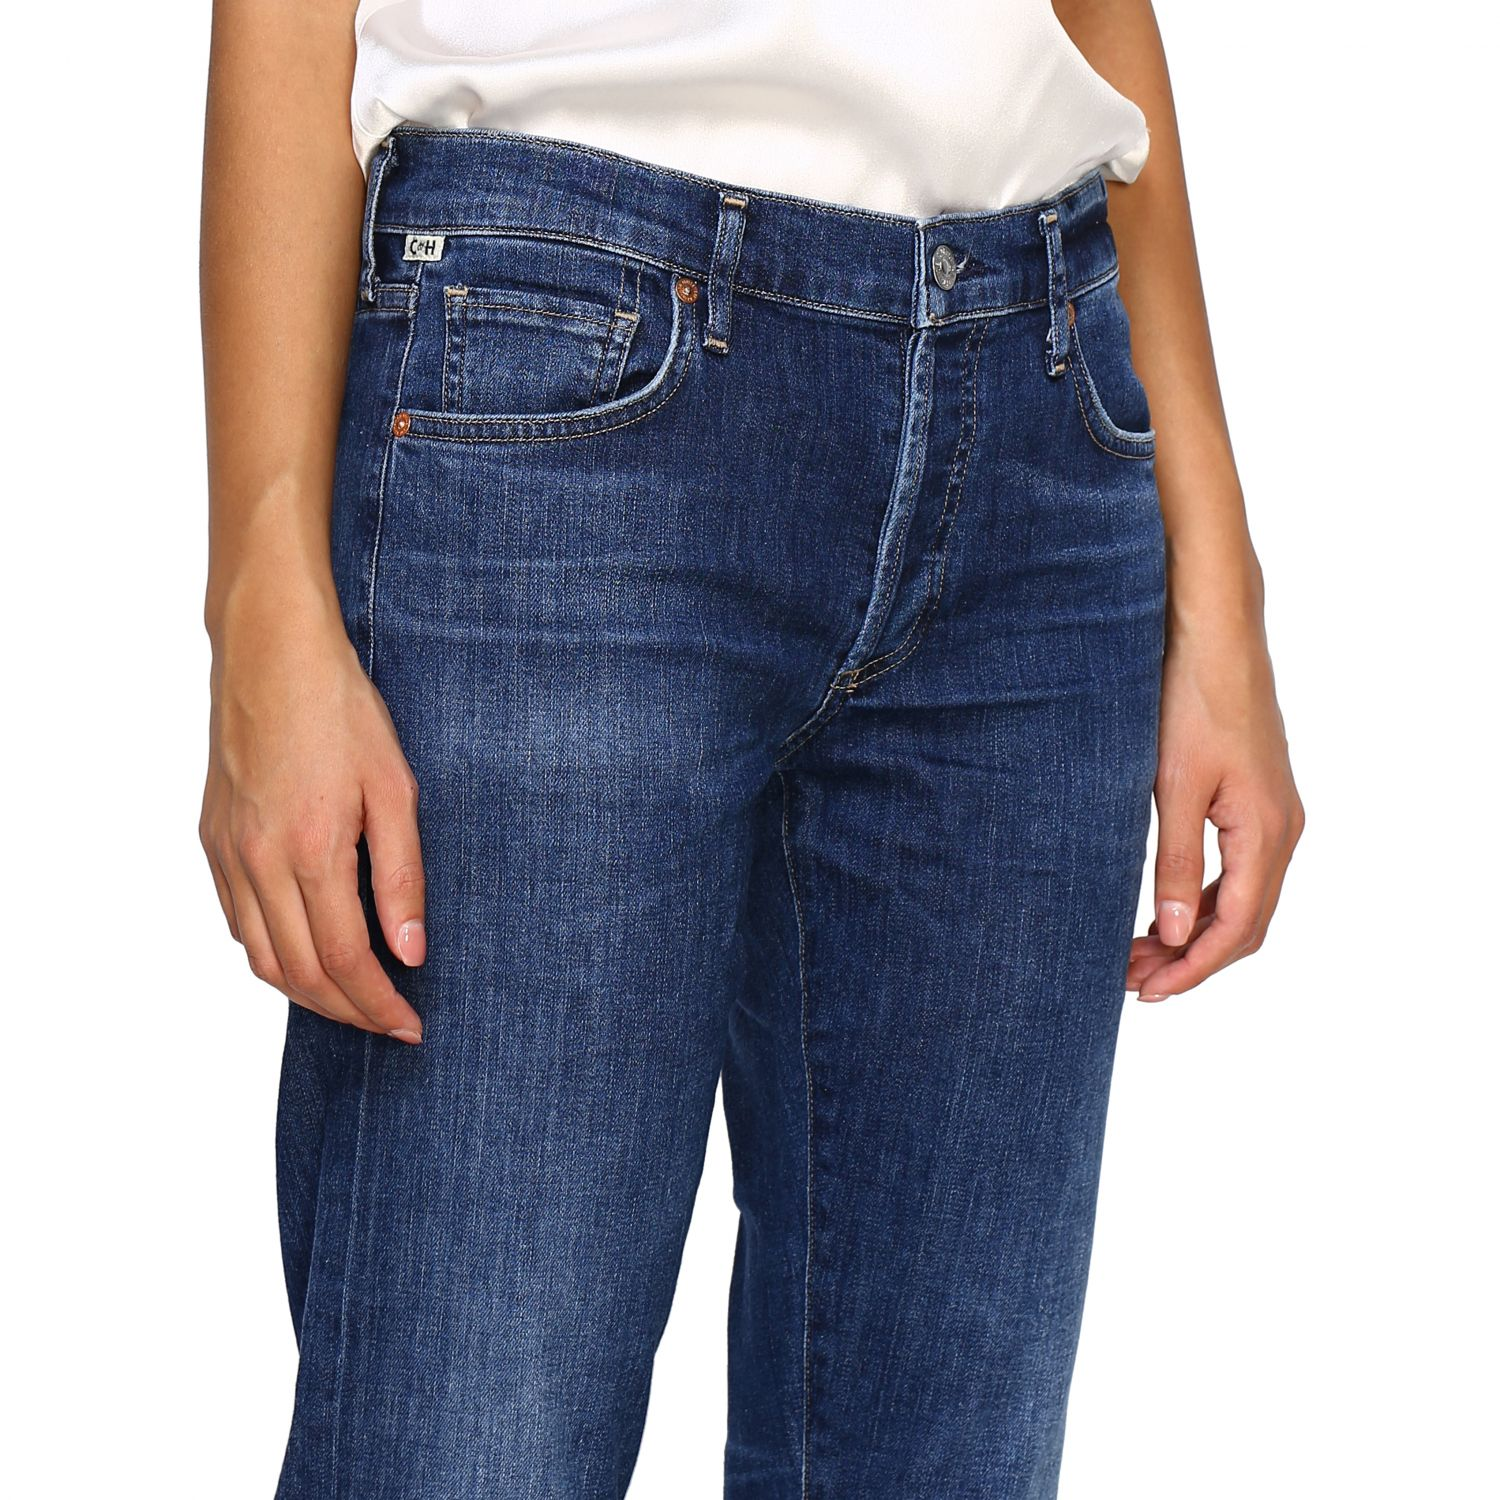 Jeans femme Citizens Of Humanity bleu 5